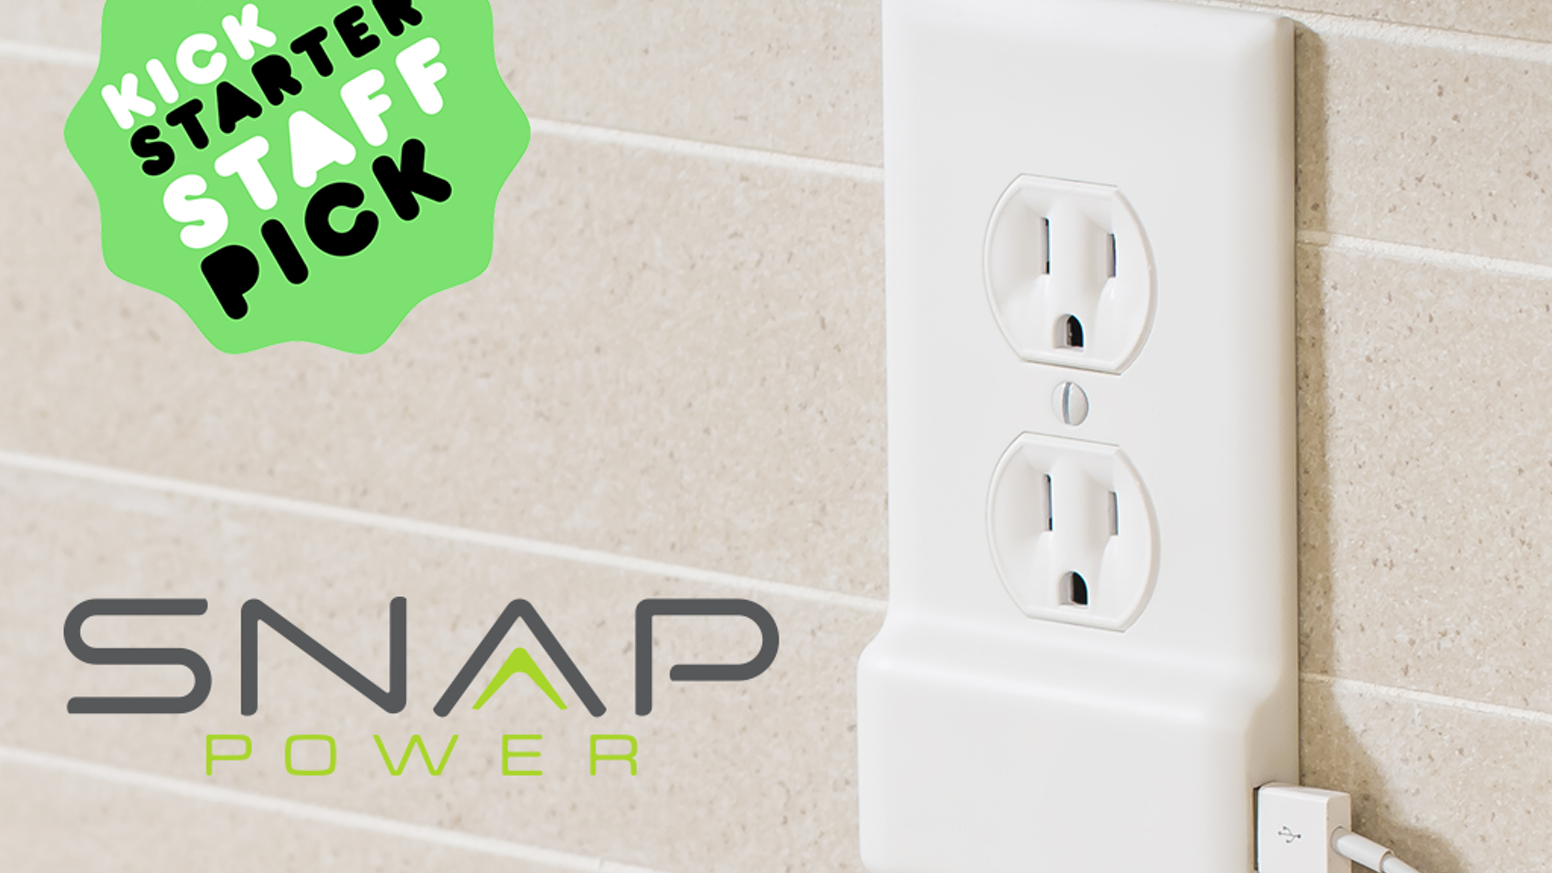 Snappower Charger A Usb In Coverplate No Wiring By Wall Socket South Africa Jeremy Smith Kickstarter